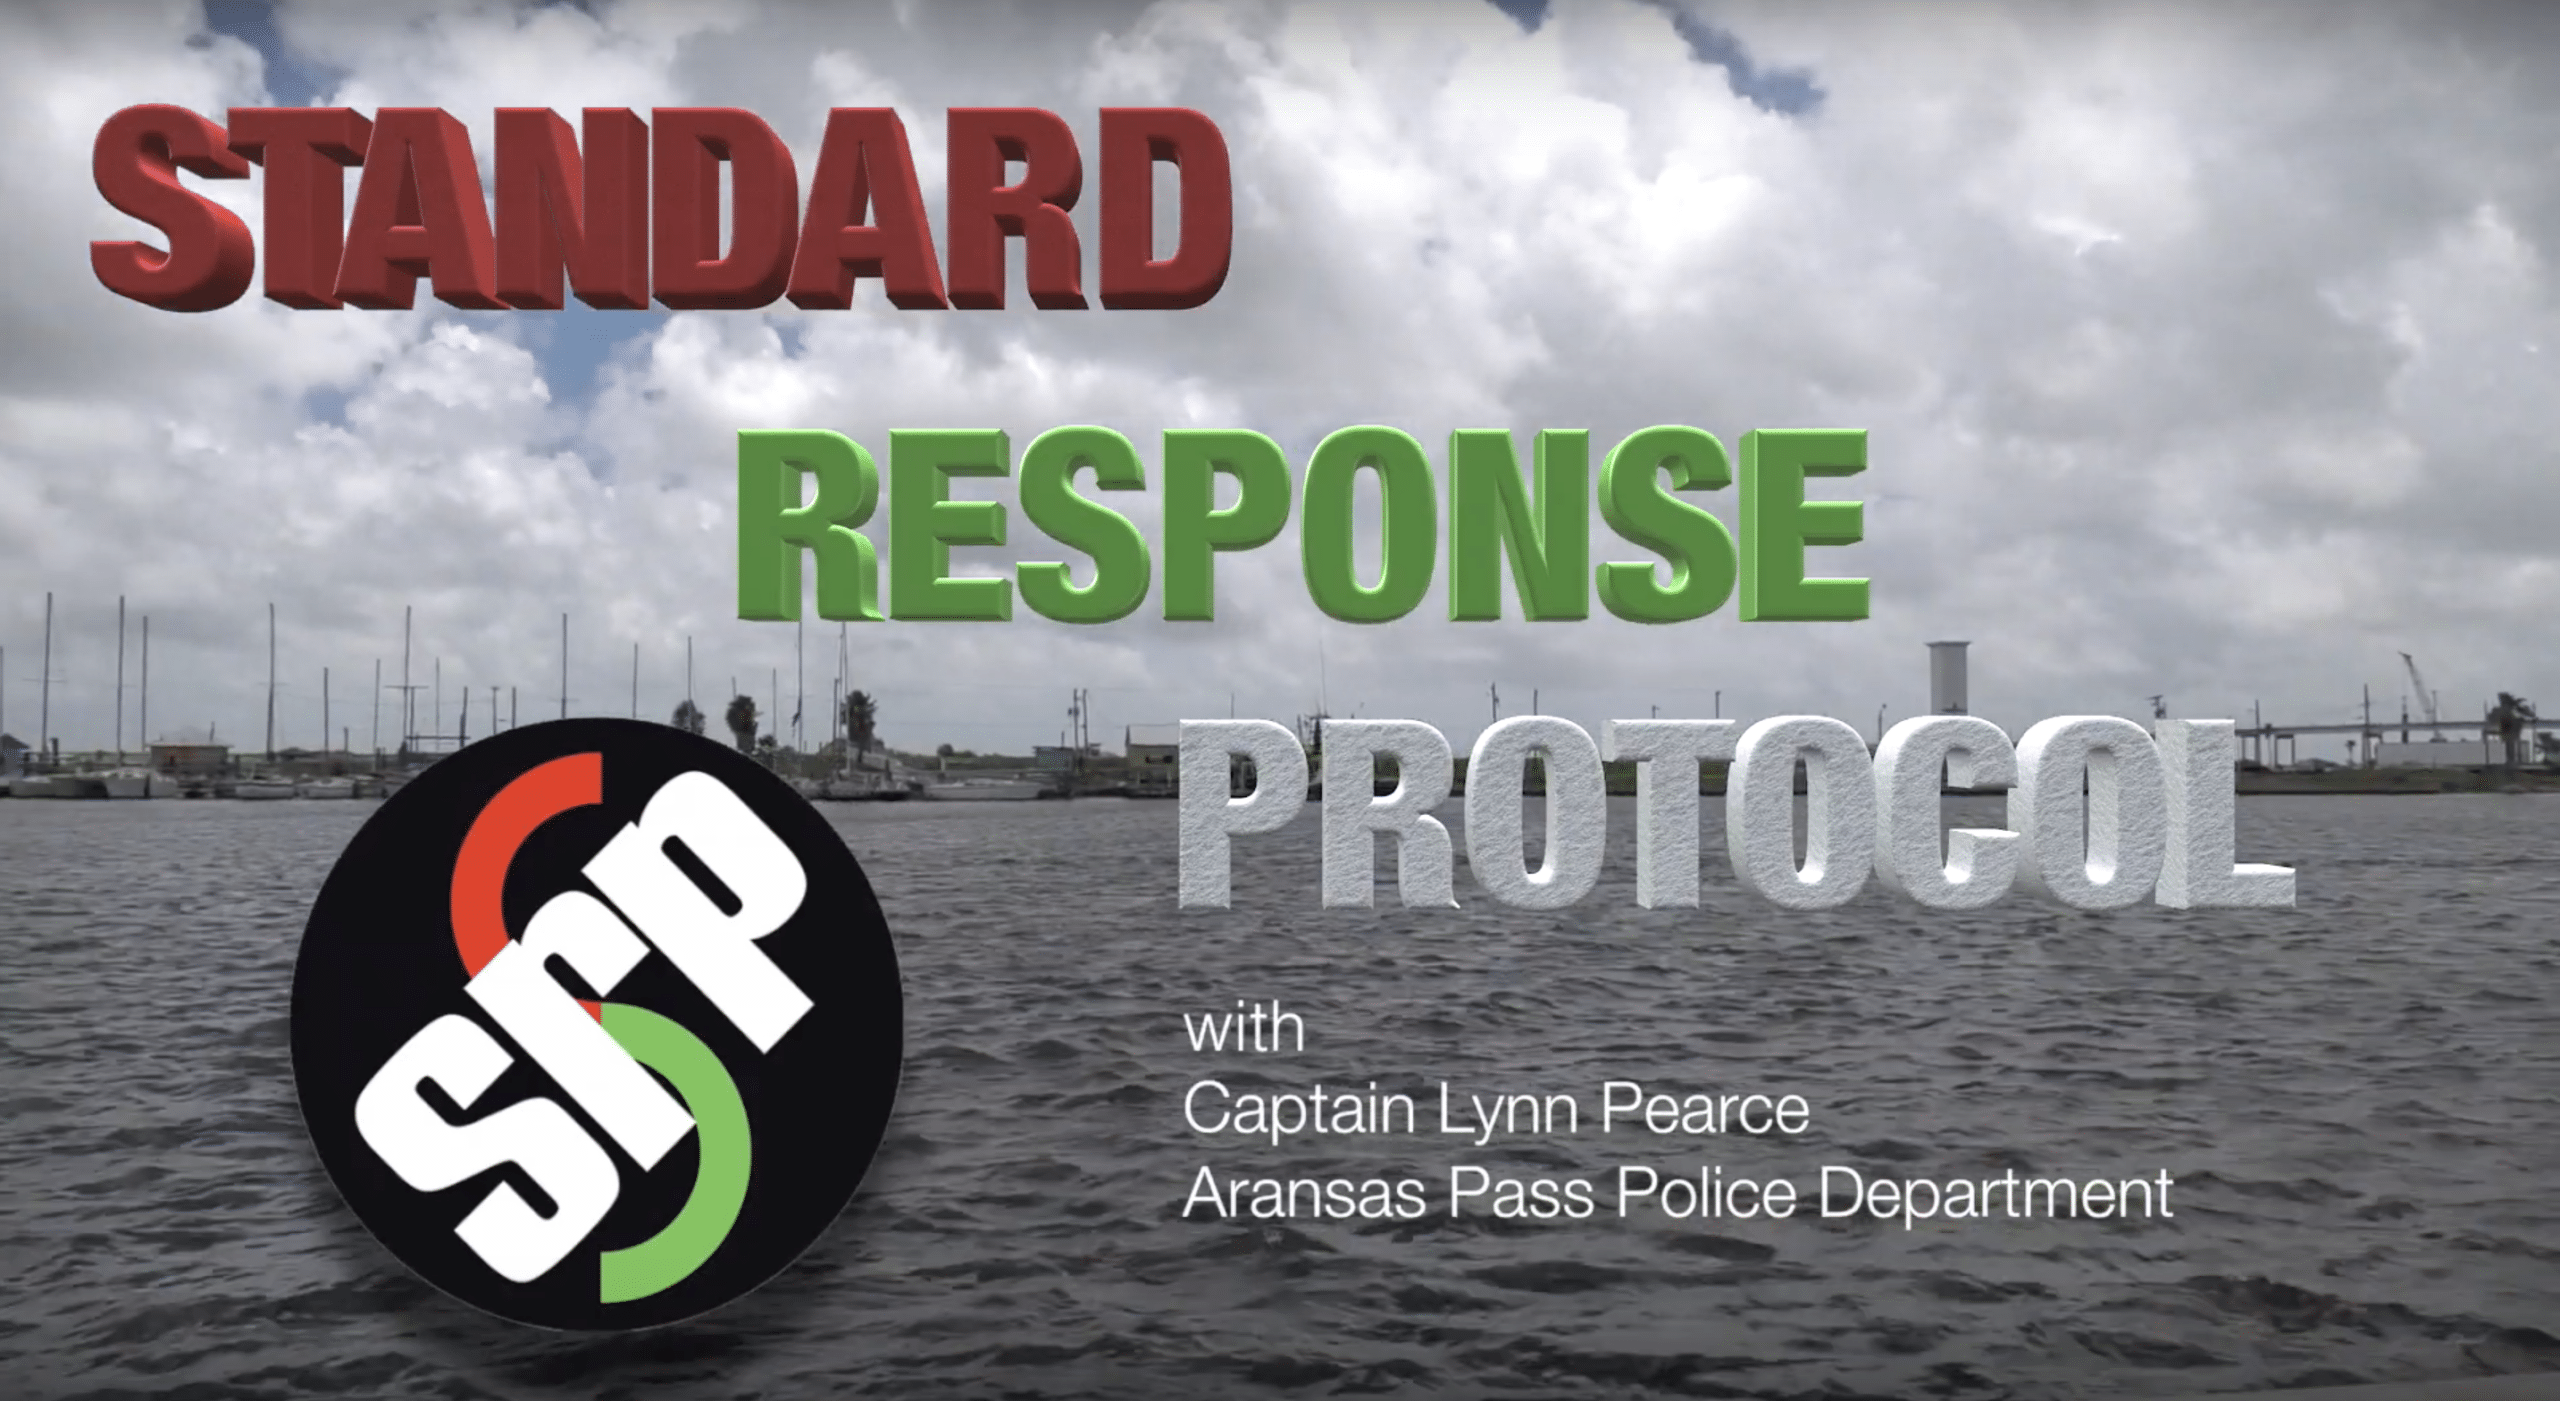 Capt. Lynn Pearce discusses the Standard Response Protocol adopted by the City of Aransas Pass and our Independent School District.